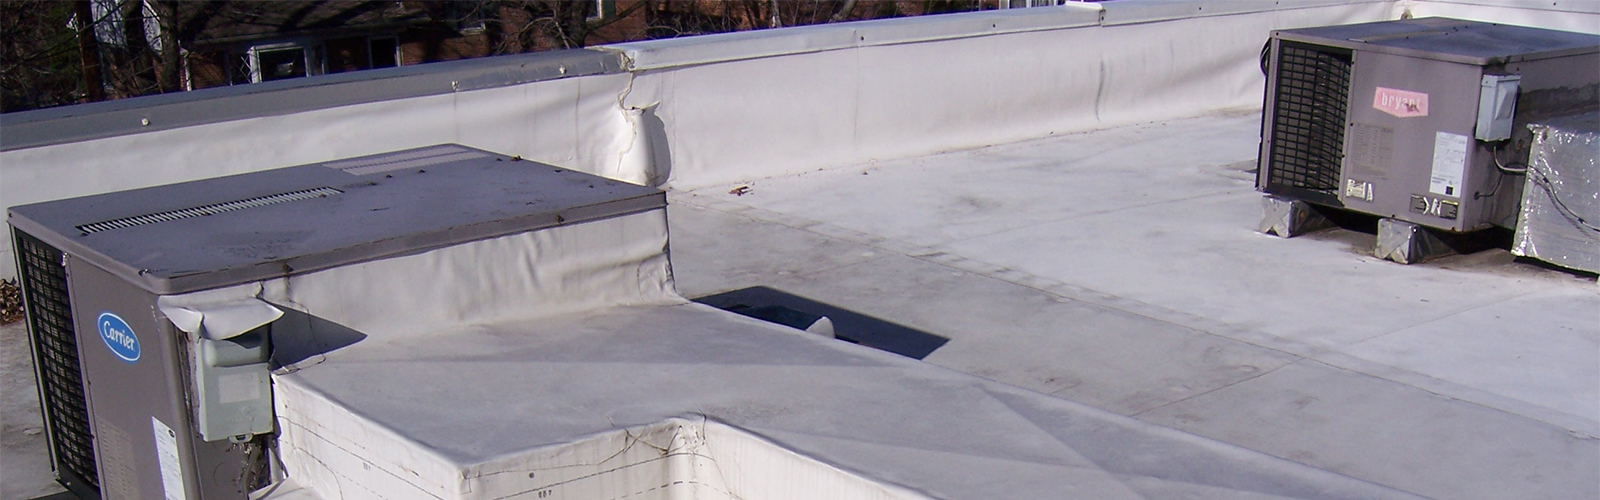 commercial roofing tpo duct wrapping